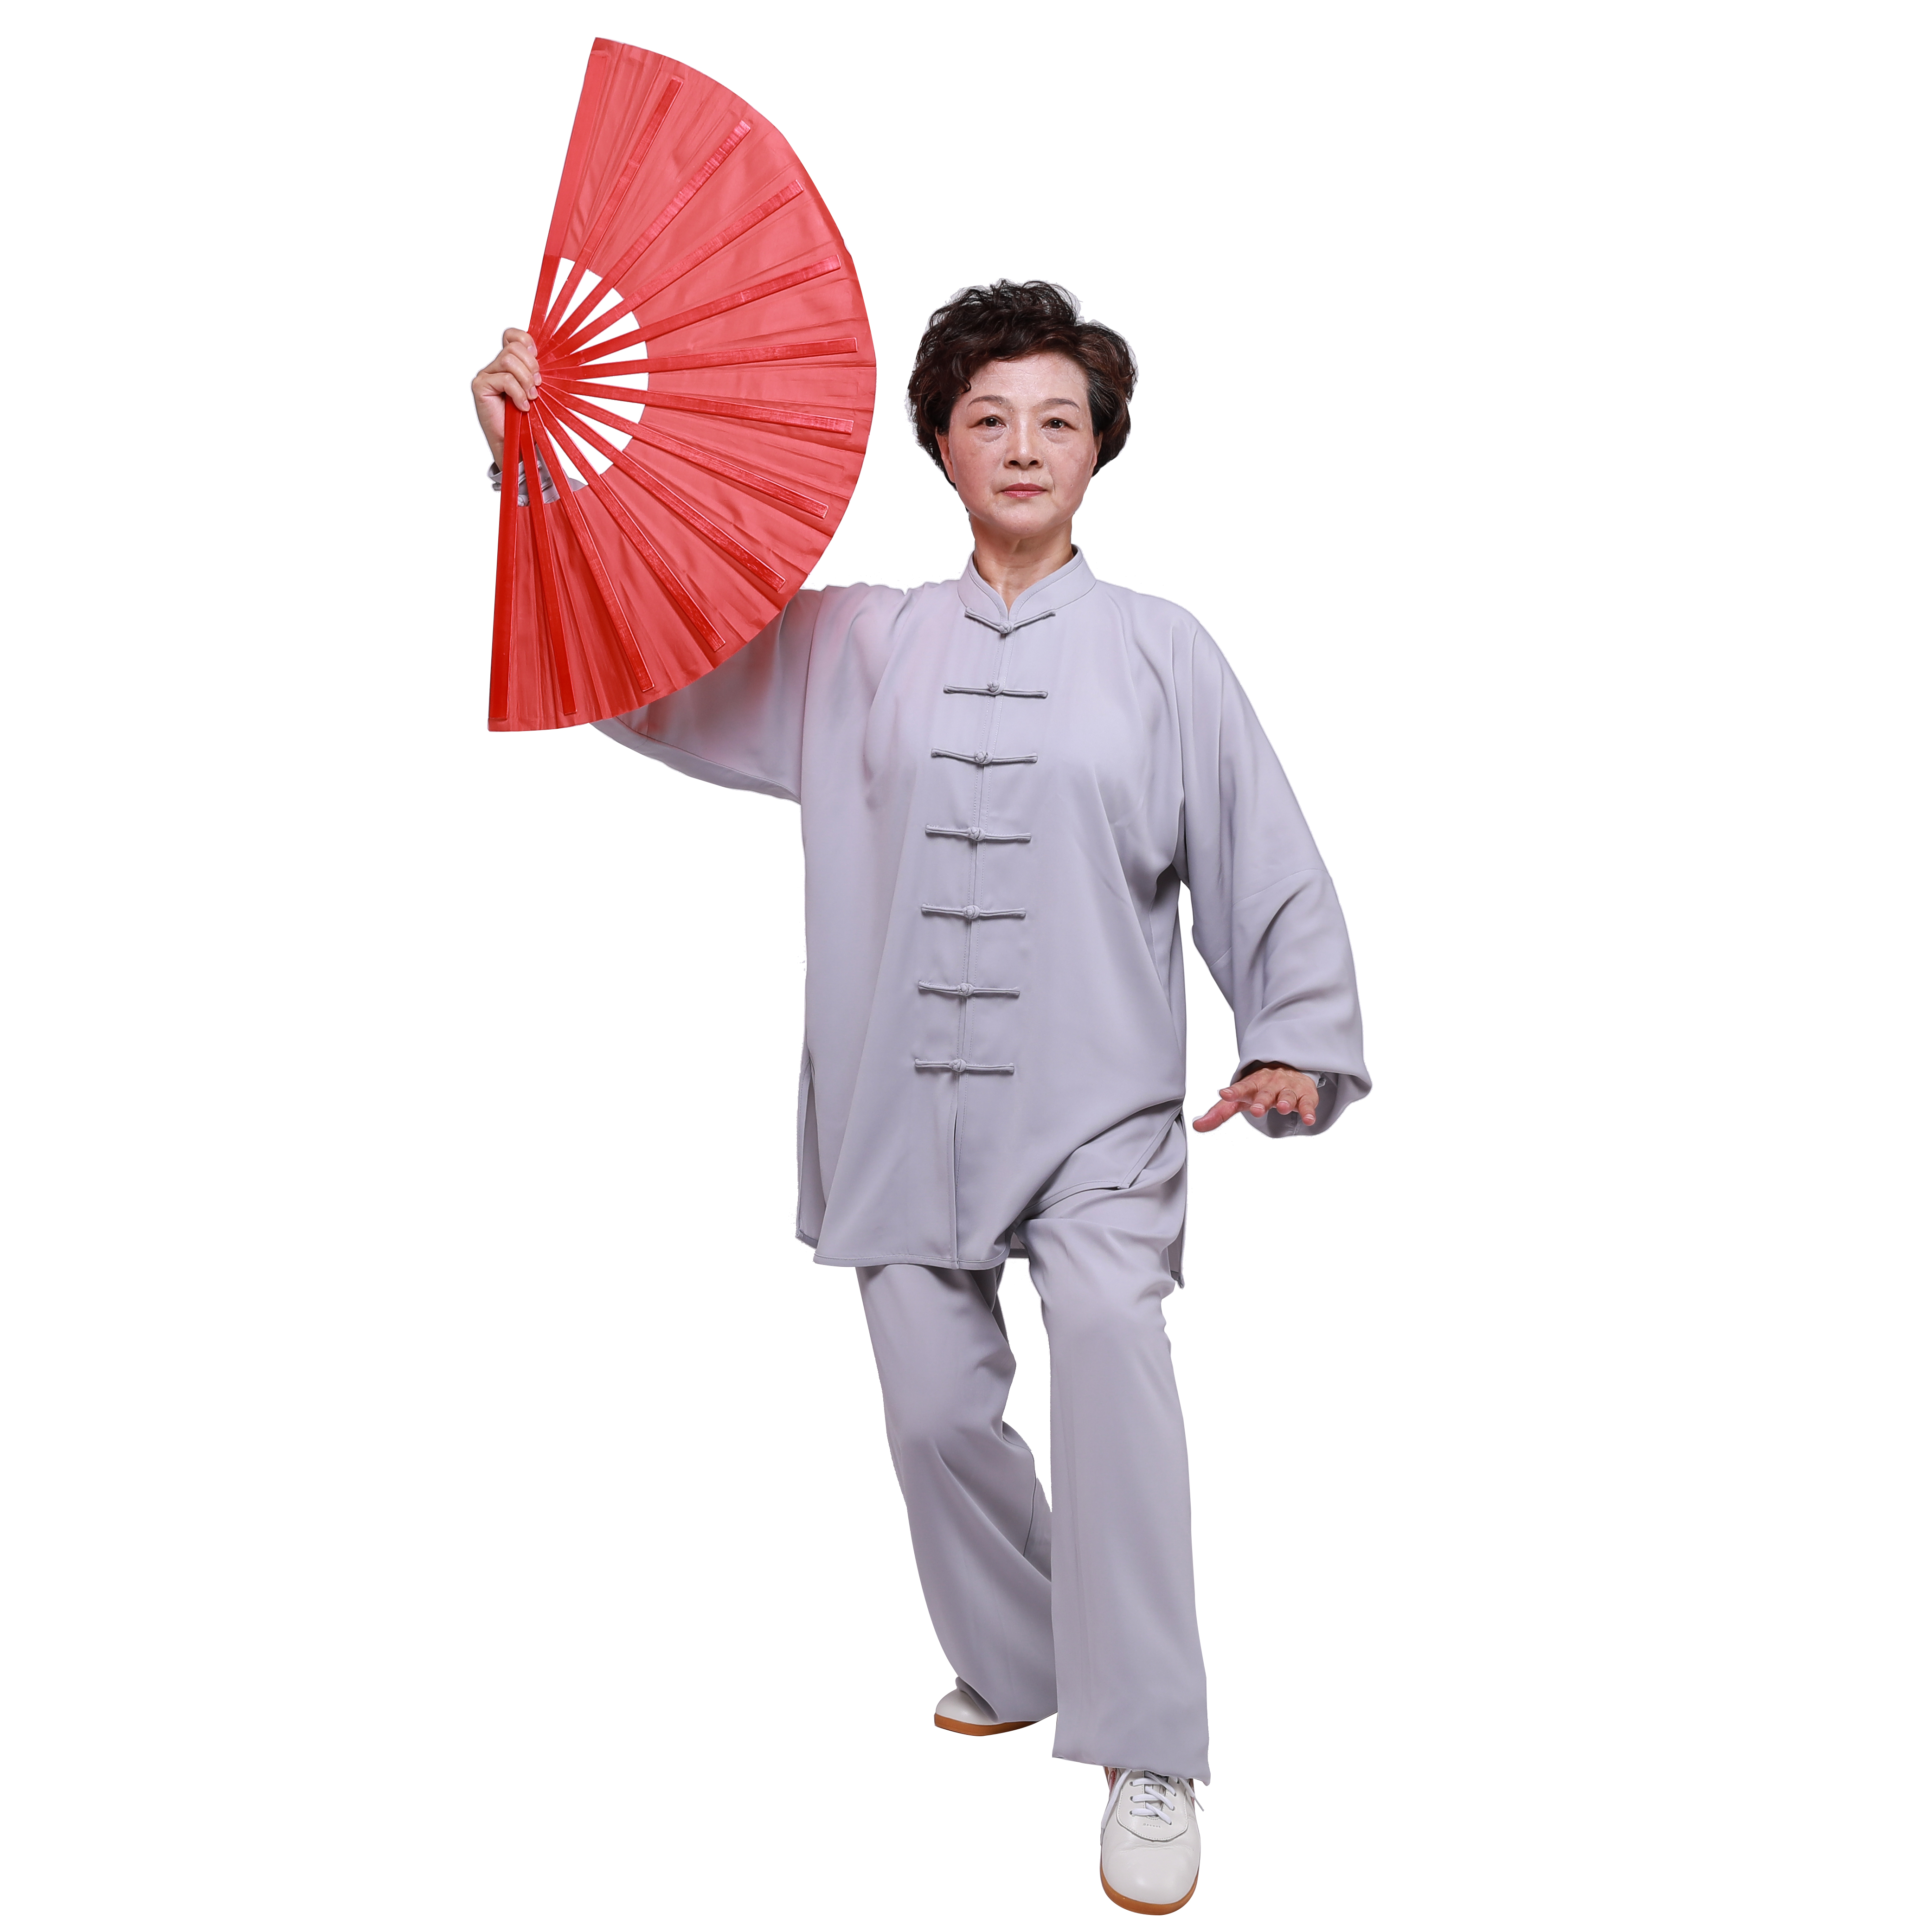 Chinesische Traditionelle Kleidung Anti-falte Wushu Kung Fu Tai Chi Uniform